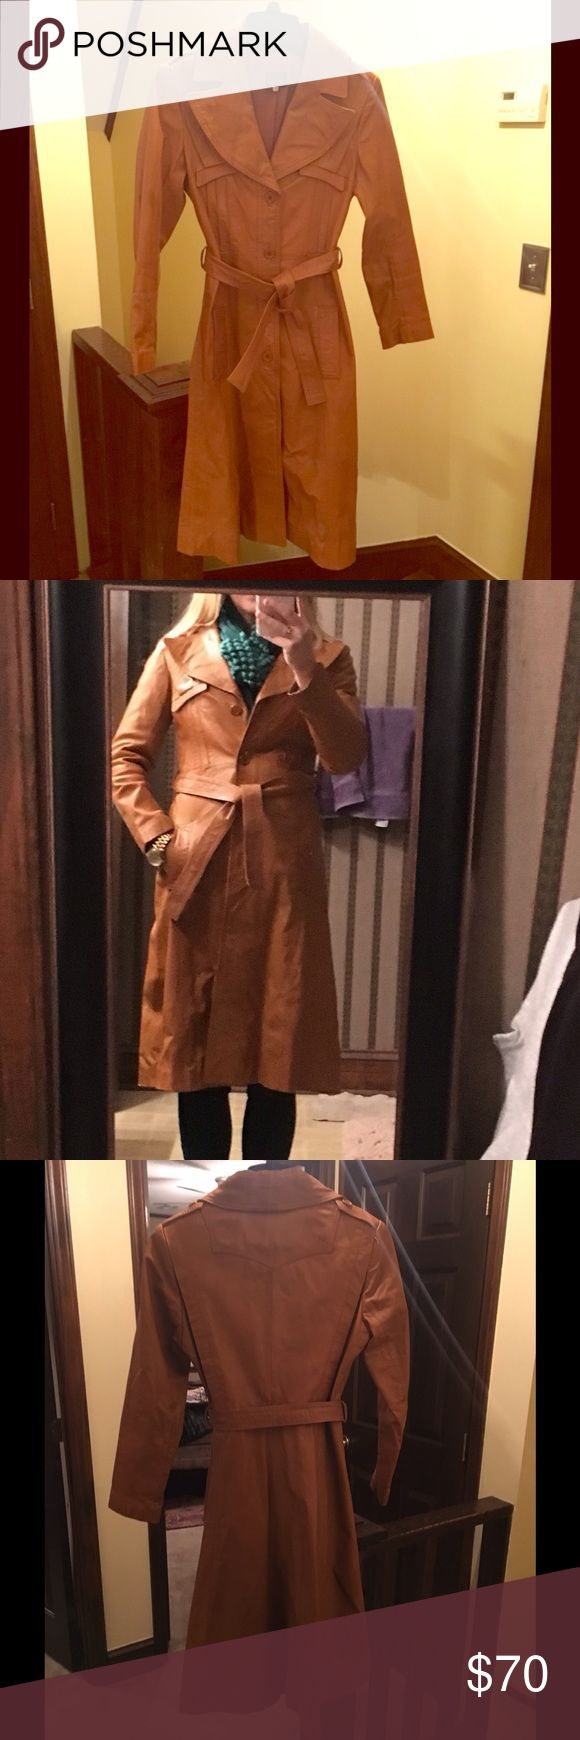 Real leather camel brown trench coat A gorgeous vintage piece in excellent vintage condition, perfect for that winter boho look! A few small spots but faint and not noticible when wearing the garment.  A gorgeous vintage treasure! Hits below the knee.  Listed as a vintage 7/8 but would best fit a 0 to small 4 Vintage Jackets & Coats Trench Coats